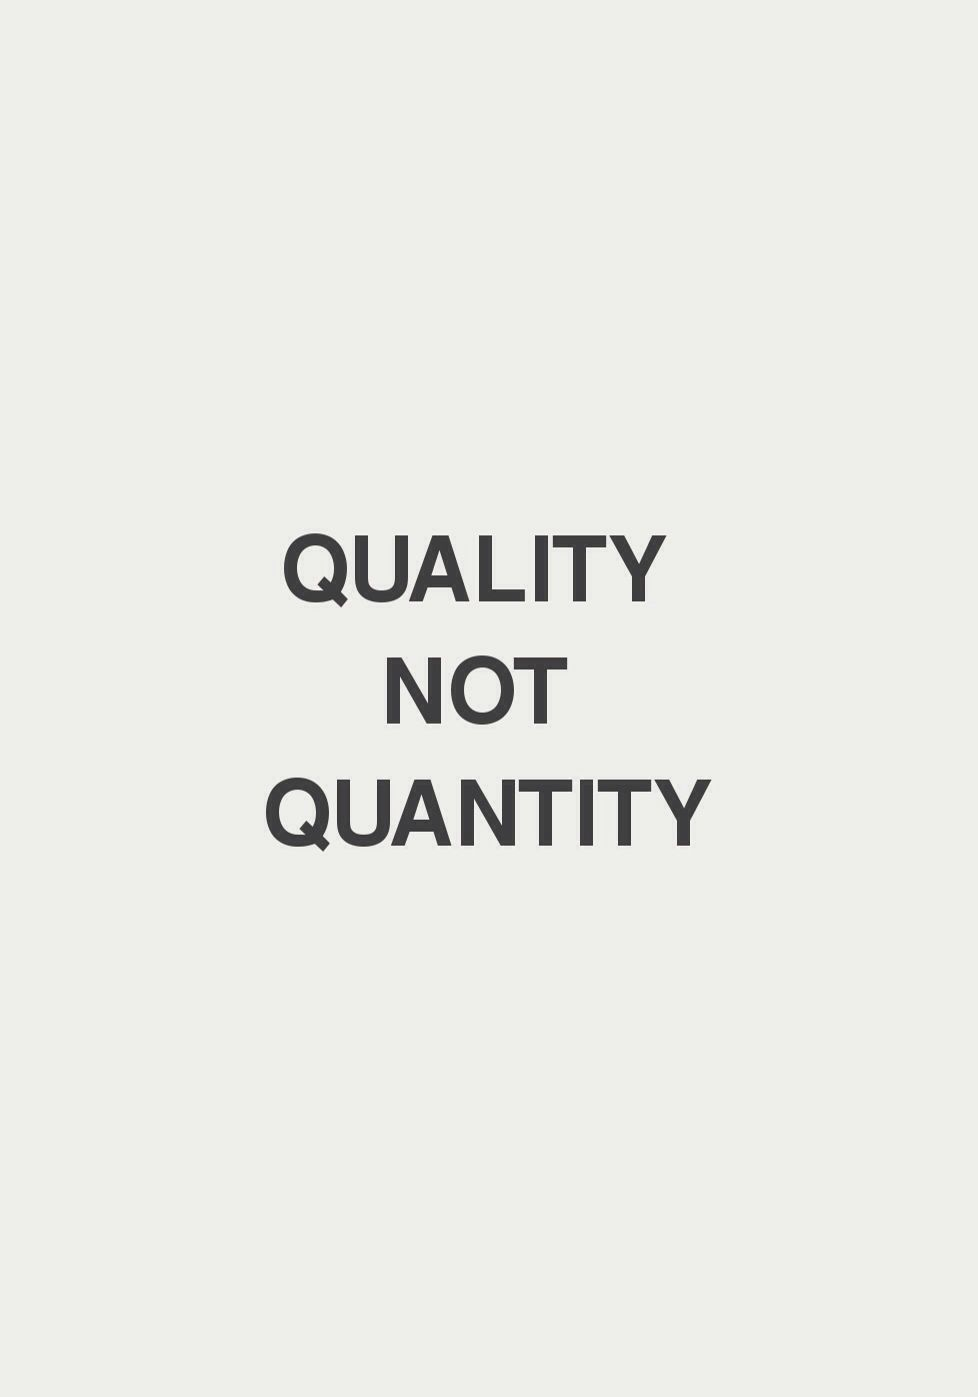 Quotes Quality Quality Not Quantity  Quotes  Pinterest  Mom So True And To Be